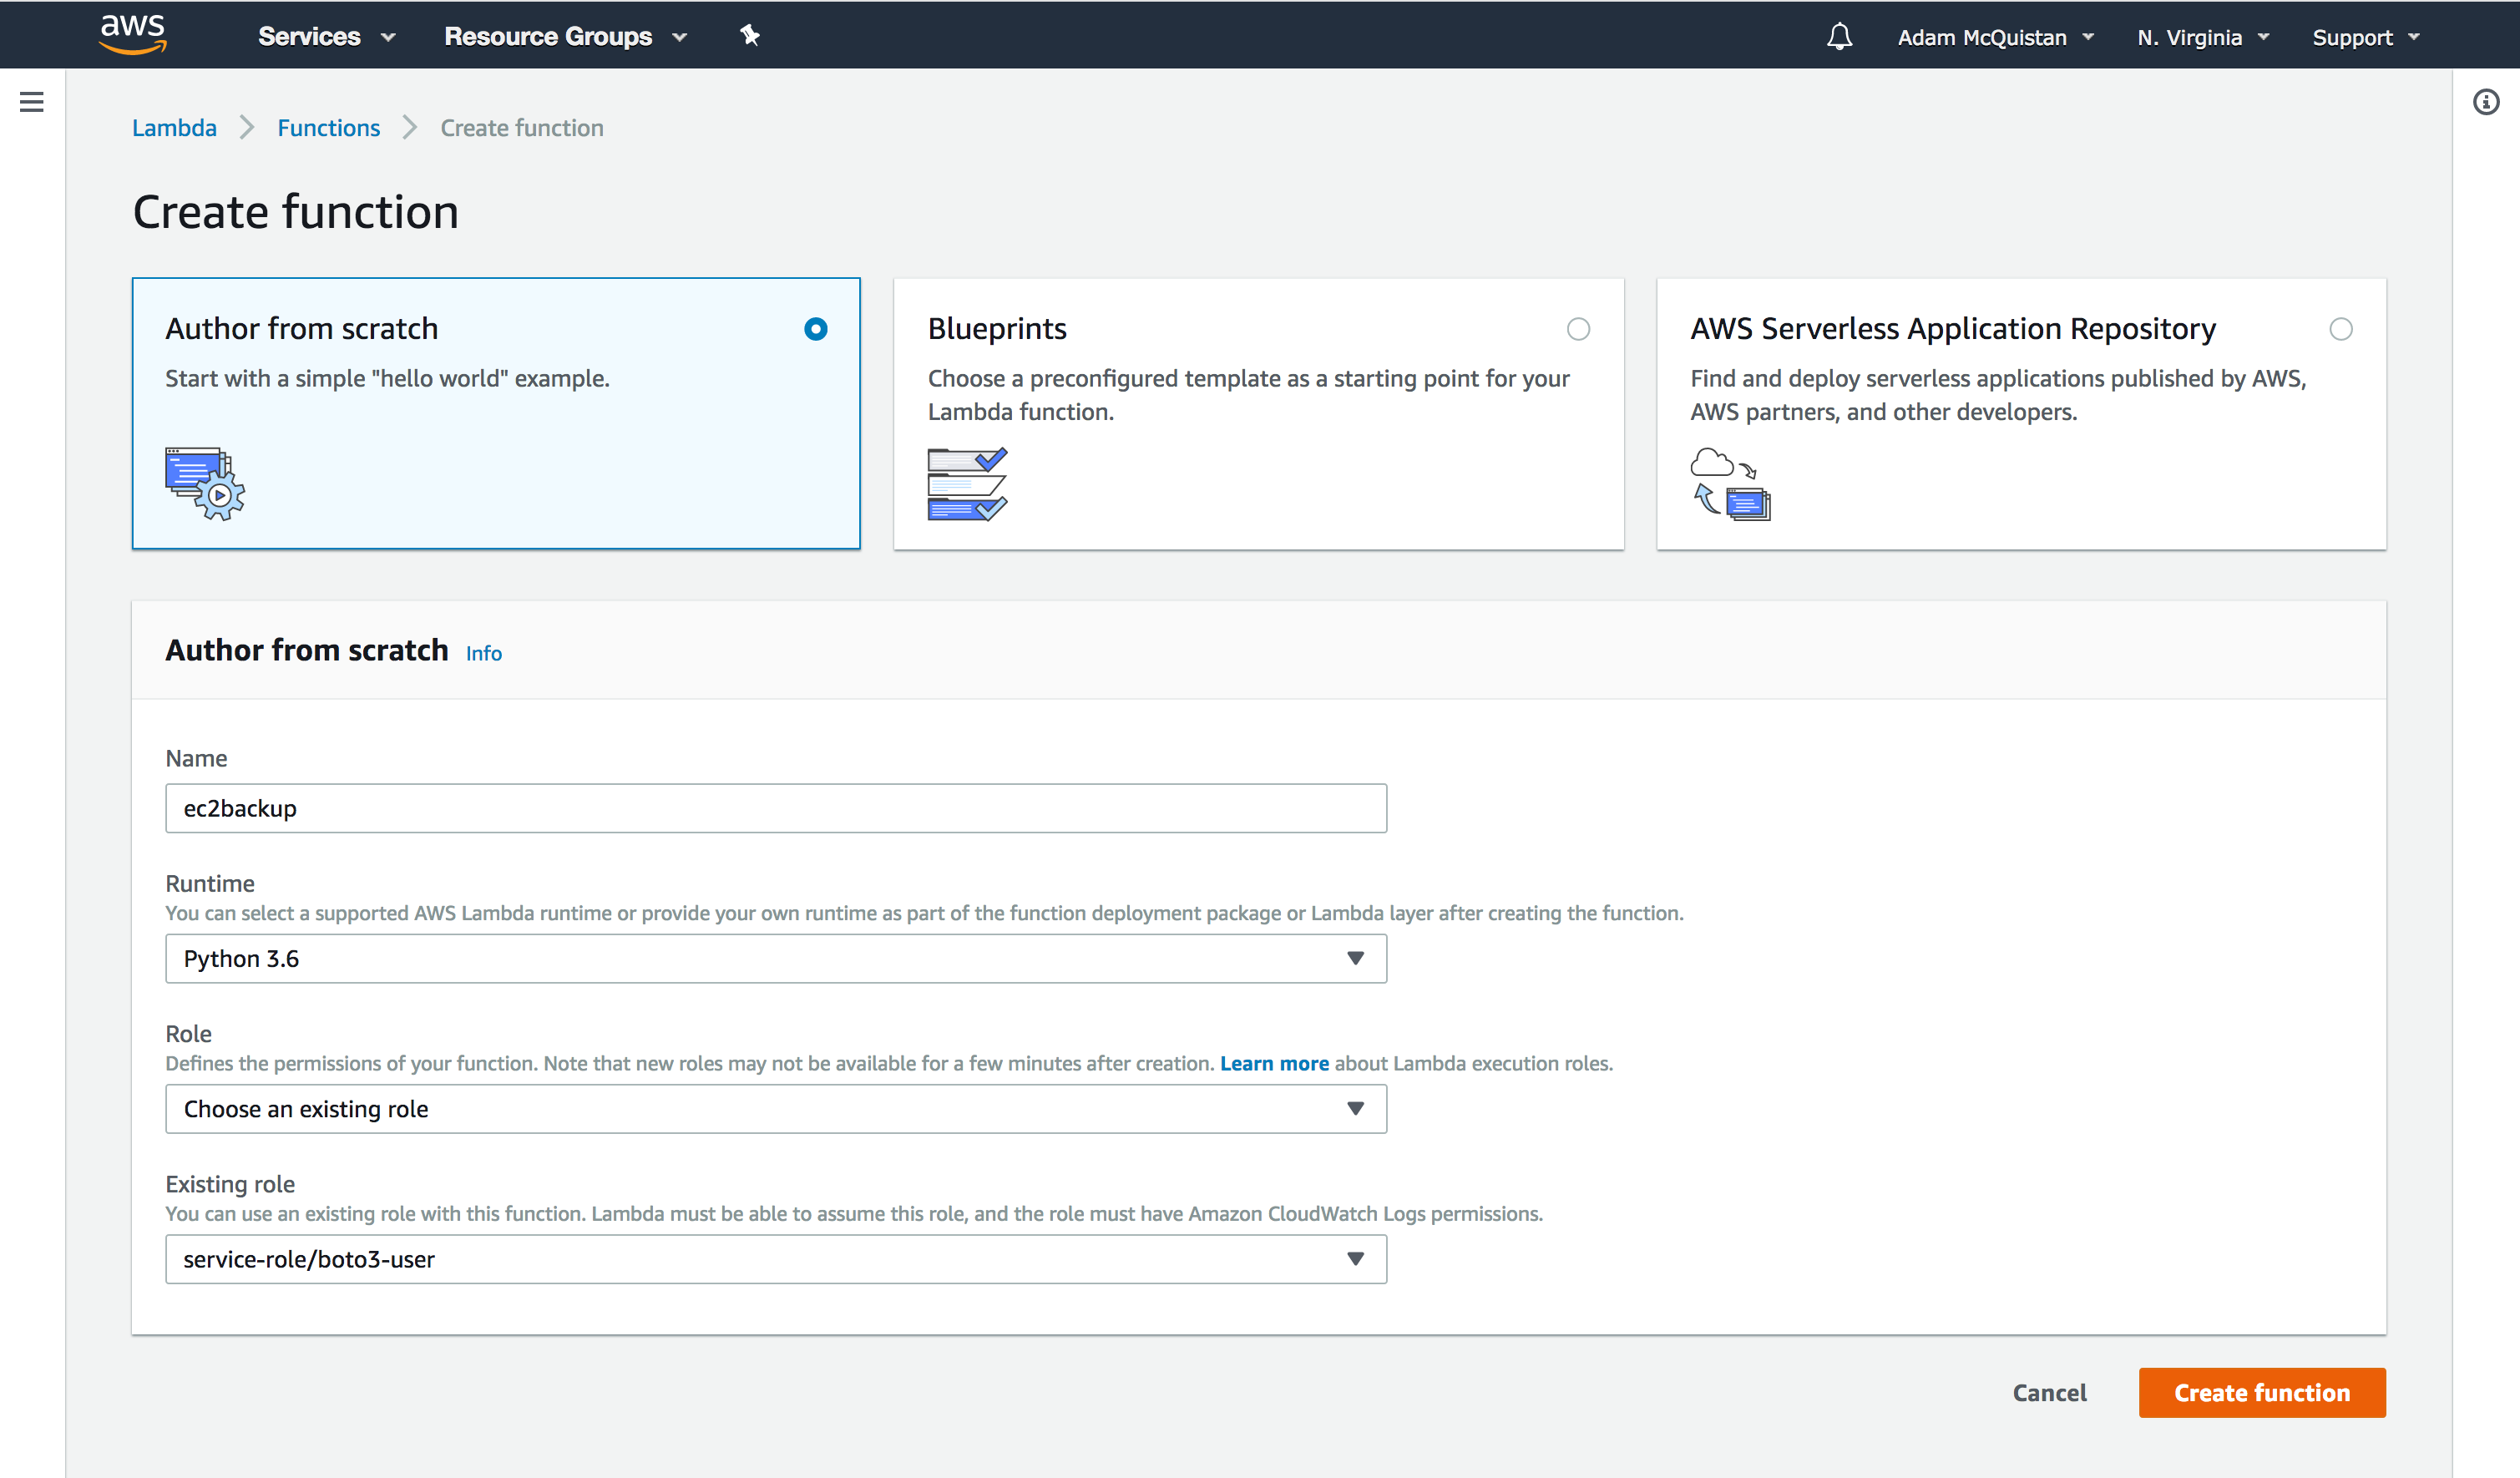 Automating AWS EC2 Management with Python and Boto3